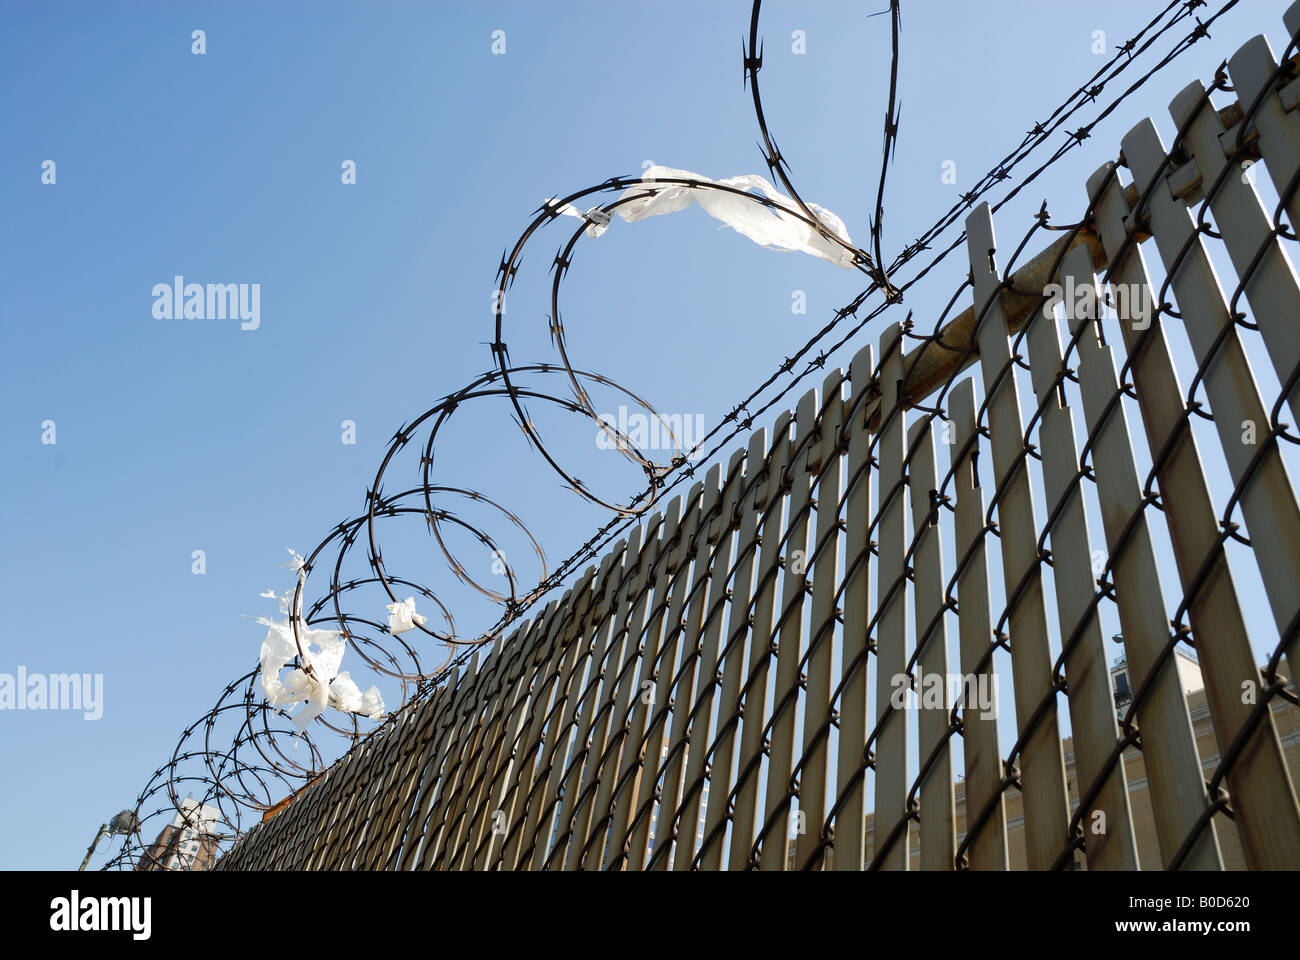 Fence with barbed wire against blue sky - Stock Image